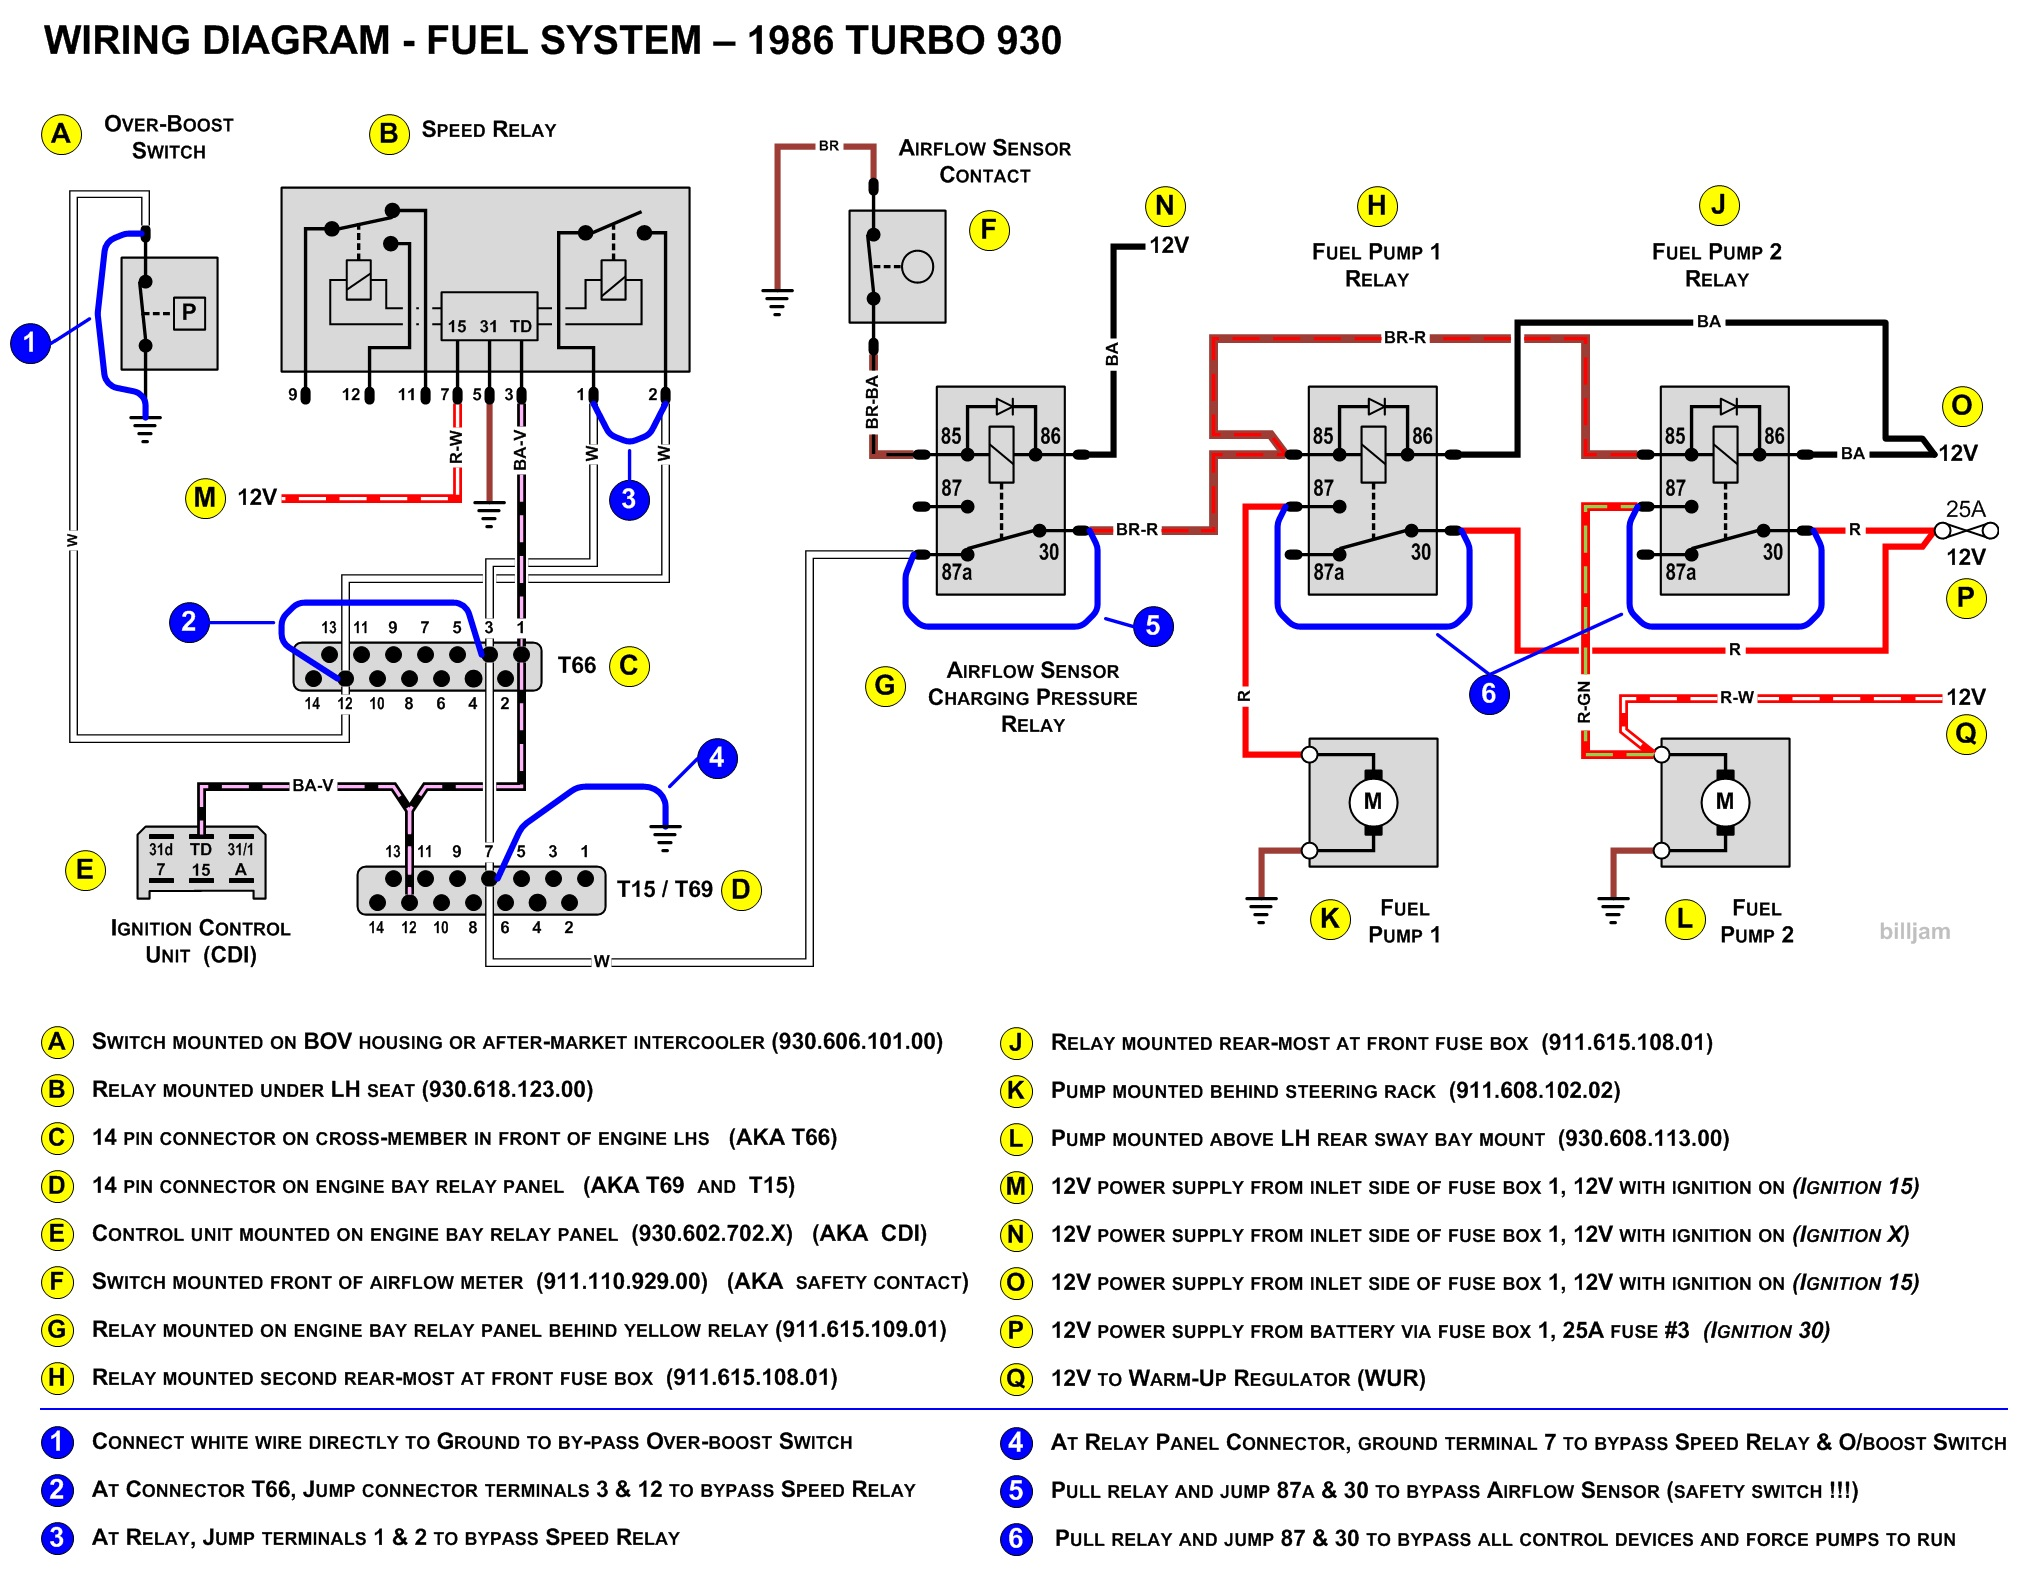 Made A Fuse Box Label For My 88 Page 3 Pelican Parts Forums 2013 Camaro 1986 930 Fuel System Wiring Diagram With Jumpers Jpeg